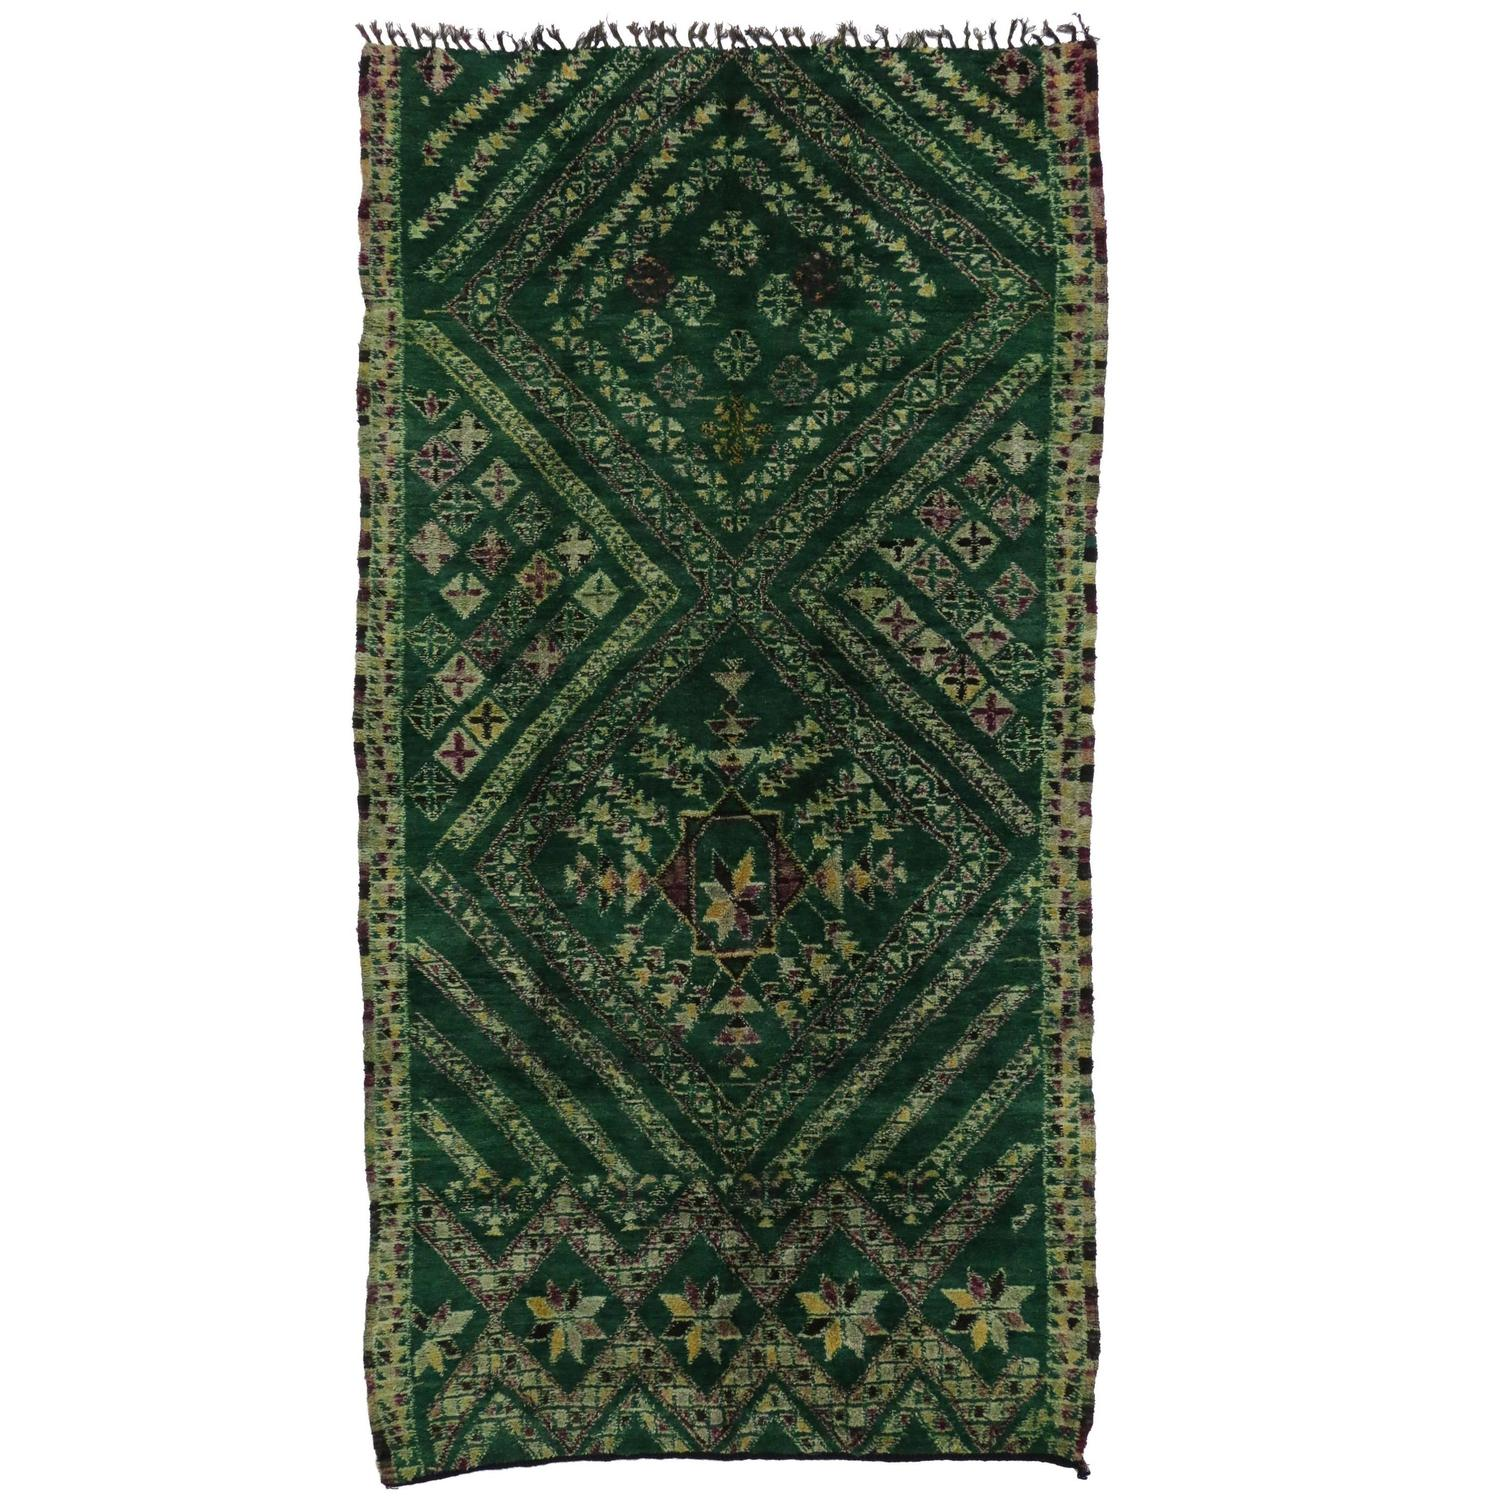 Vintage Berber Moroccan Rug In Green By Beni Ourain For